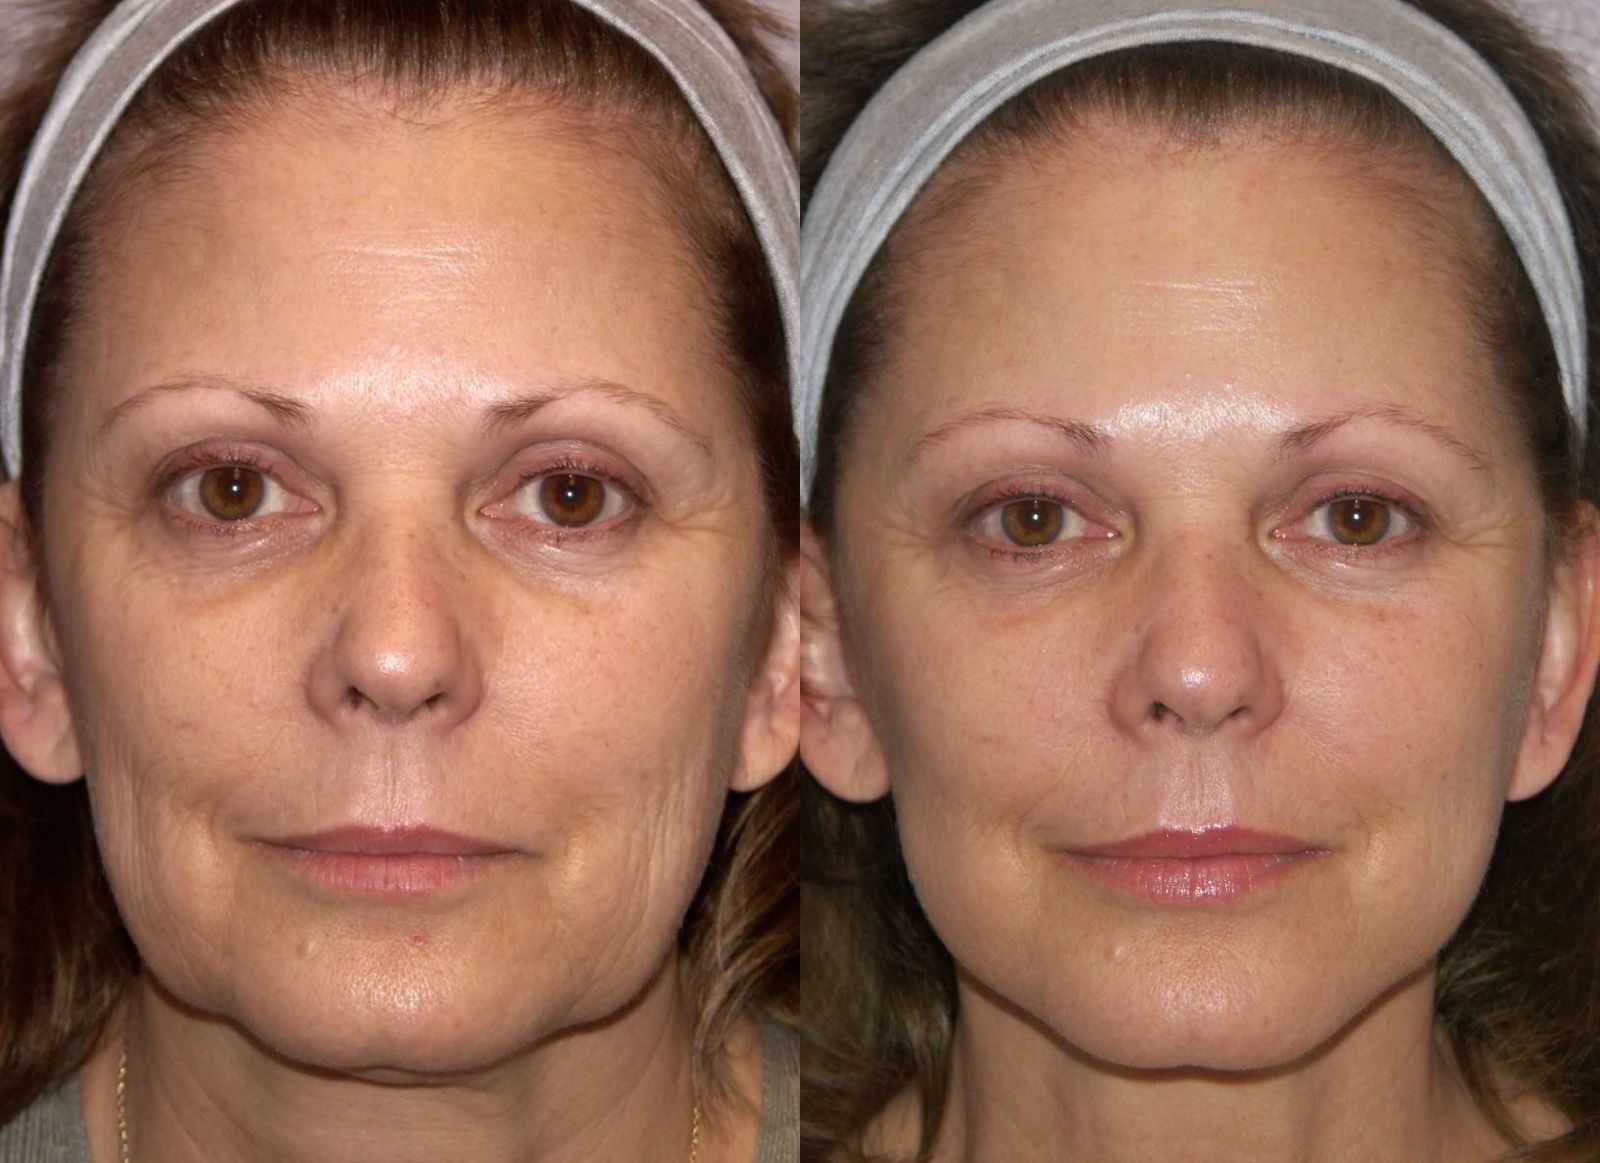 Facial swelling face lift are